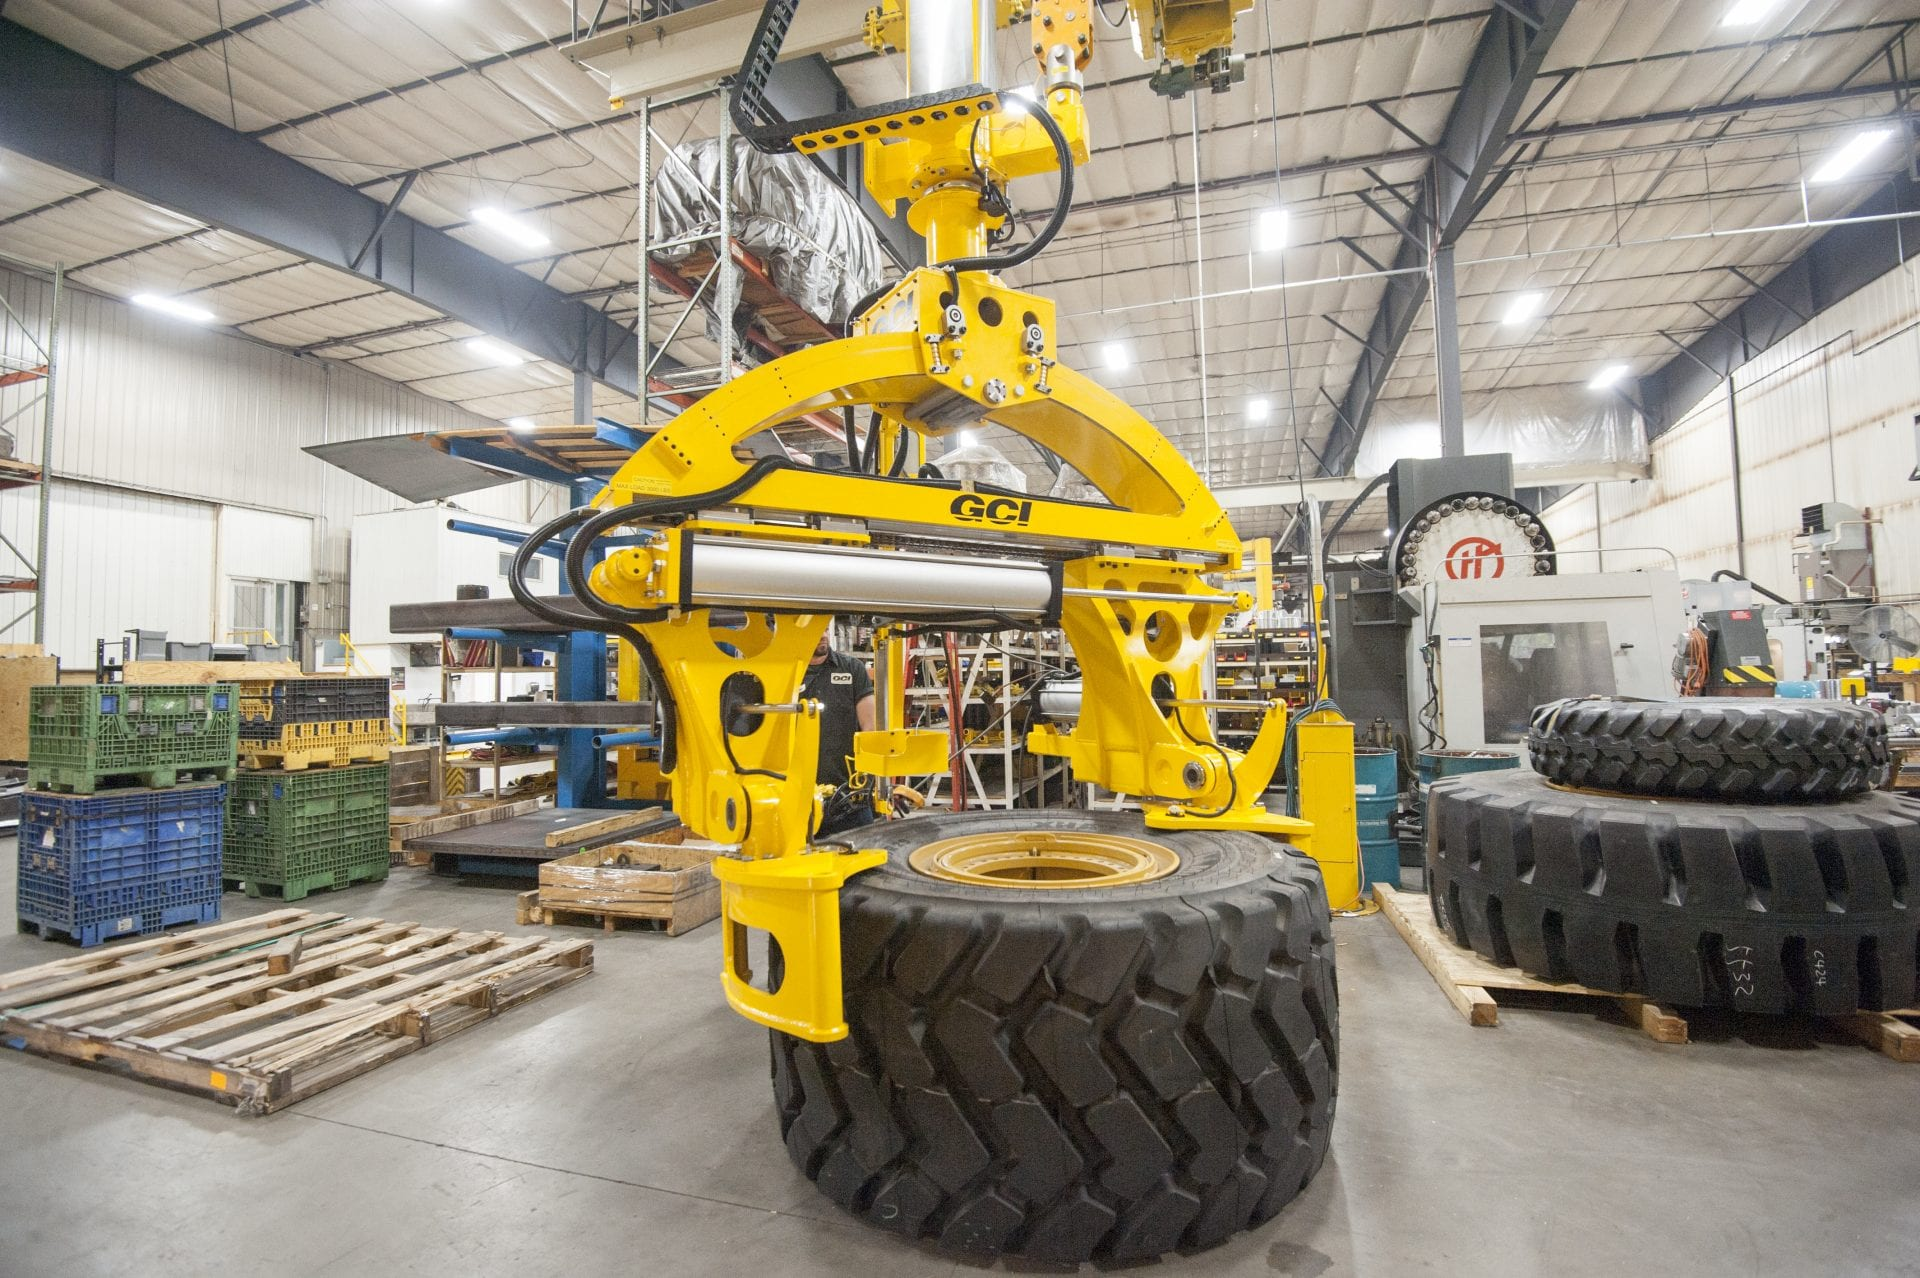 Overhead mount GCI manipulator lifting 3,000 lb Caterpillar tires of varying sizes